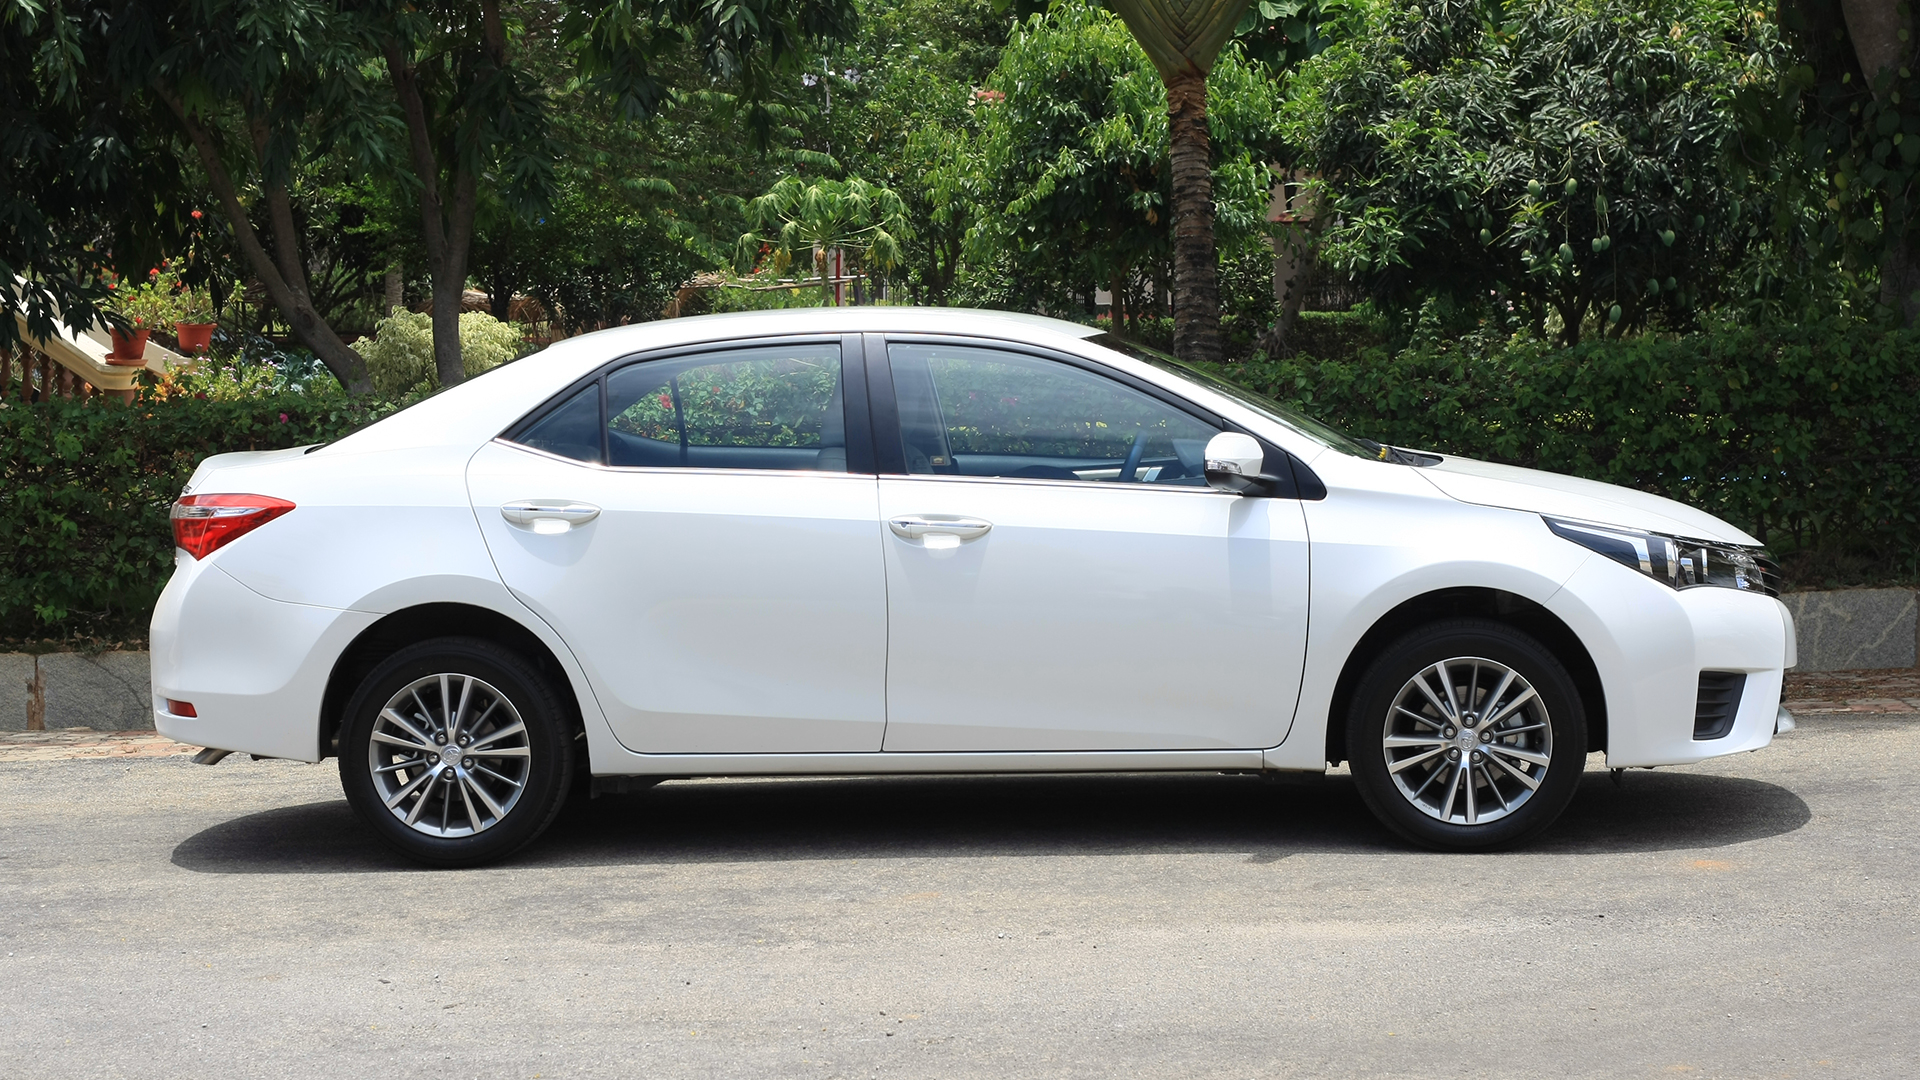 toyota corolla altis 2017 price mileage reviews specification gallery overdrive. Black Bedroom Furniture Sets. Home Design Ideas